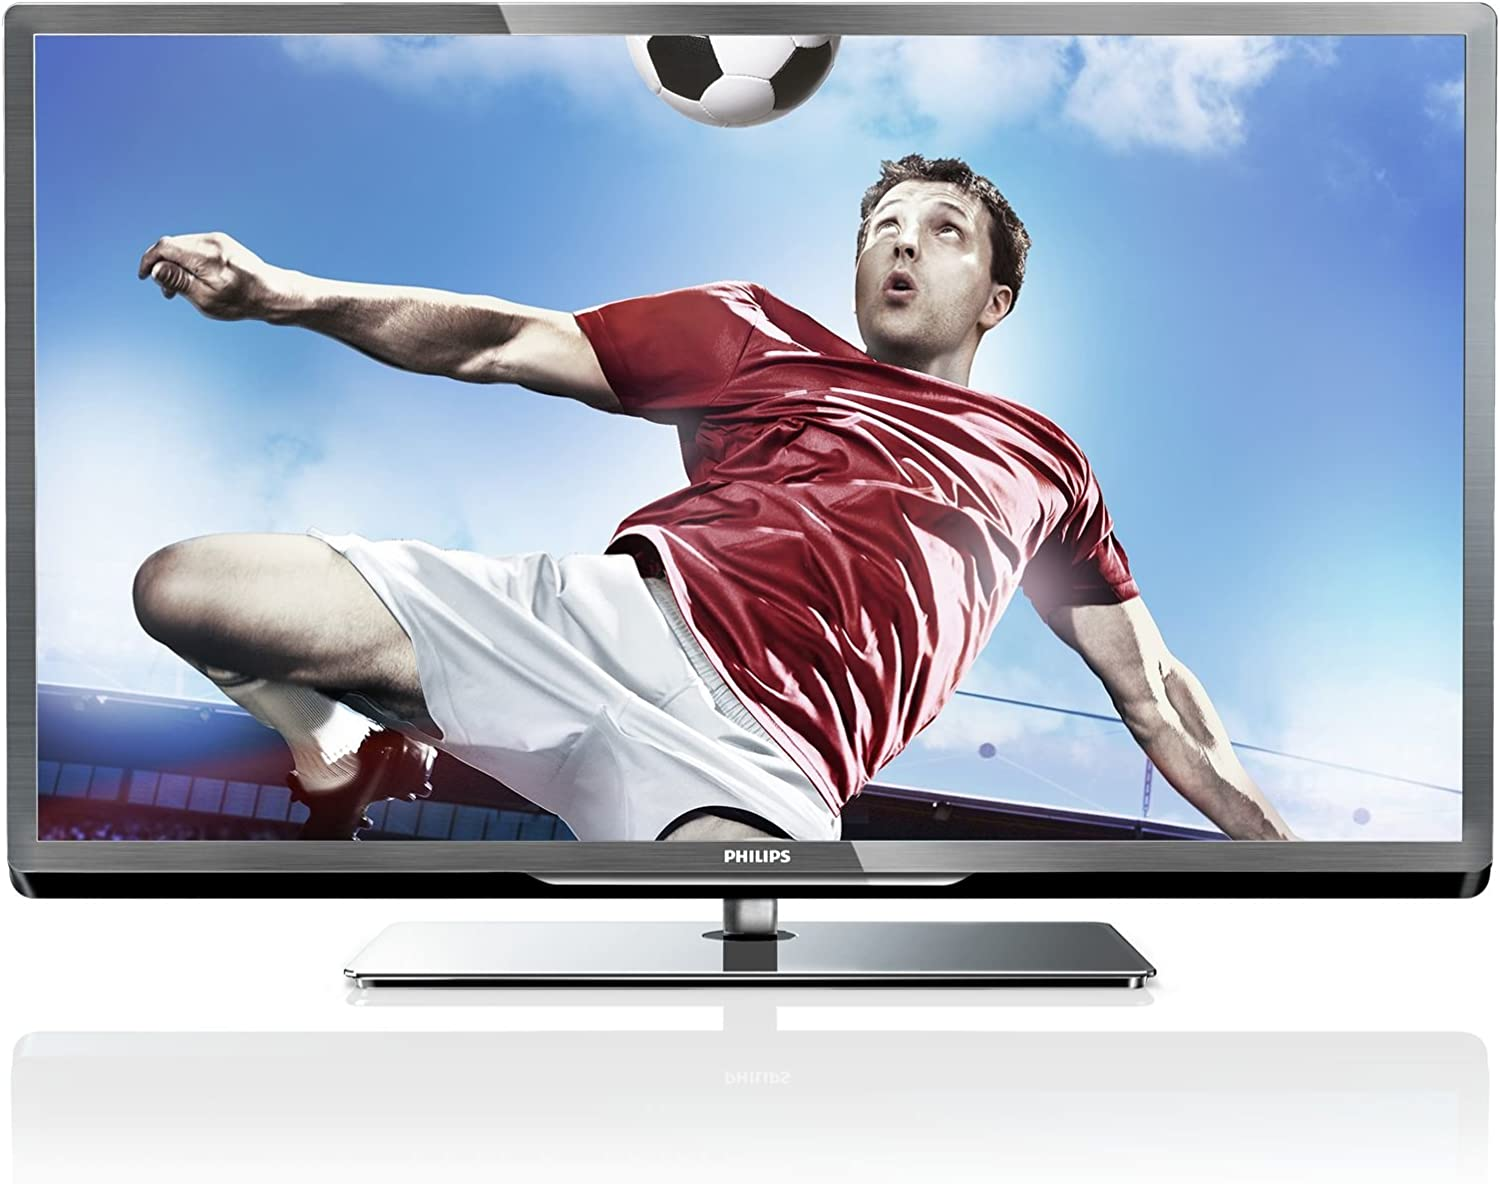 Philips 32PFL5007H/12 - Televisor Smart LED con Pixel Plus HD, 32